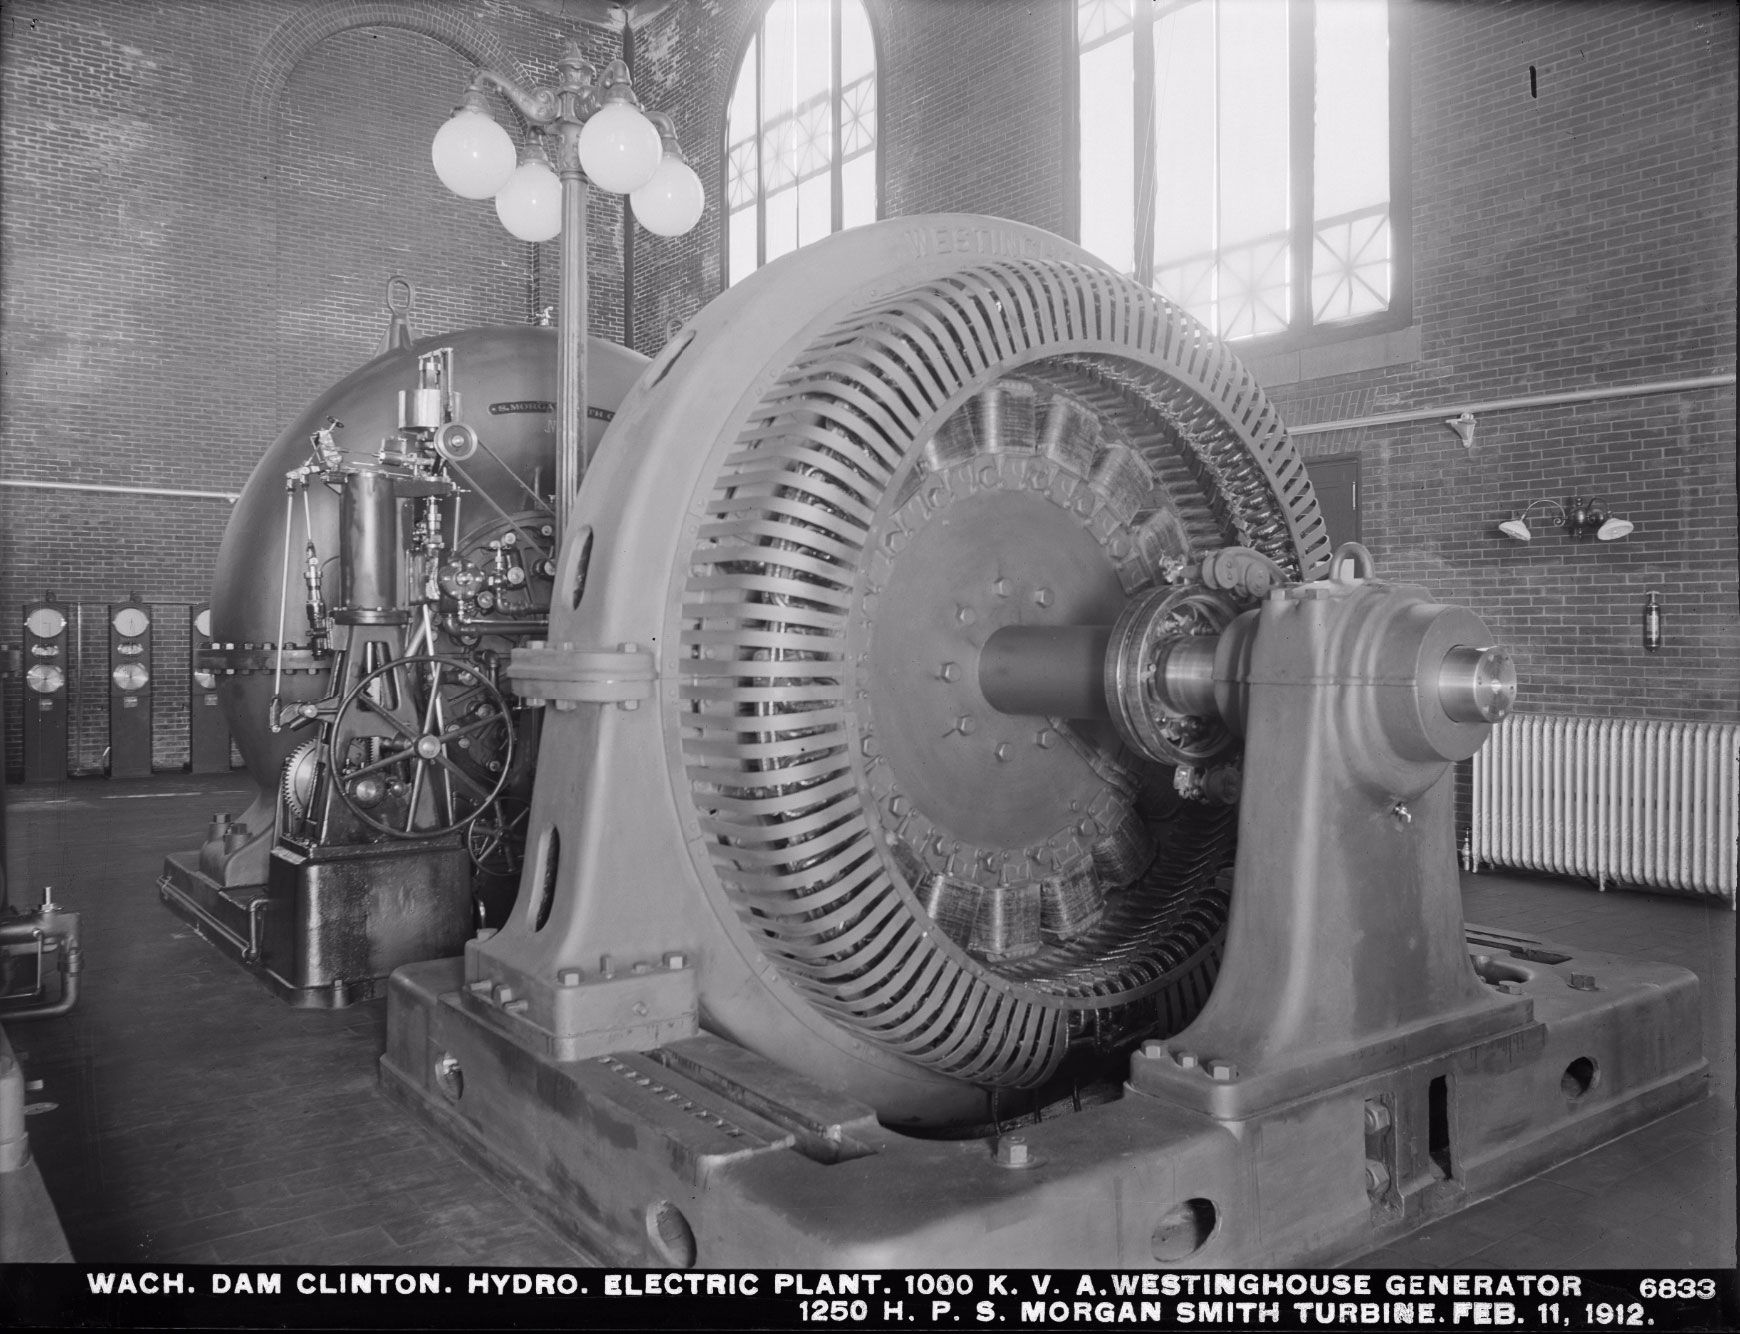 The 1000 K V A Westinghouse Generator and 1250 H P S Morgan